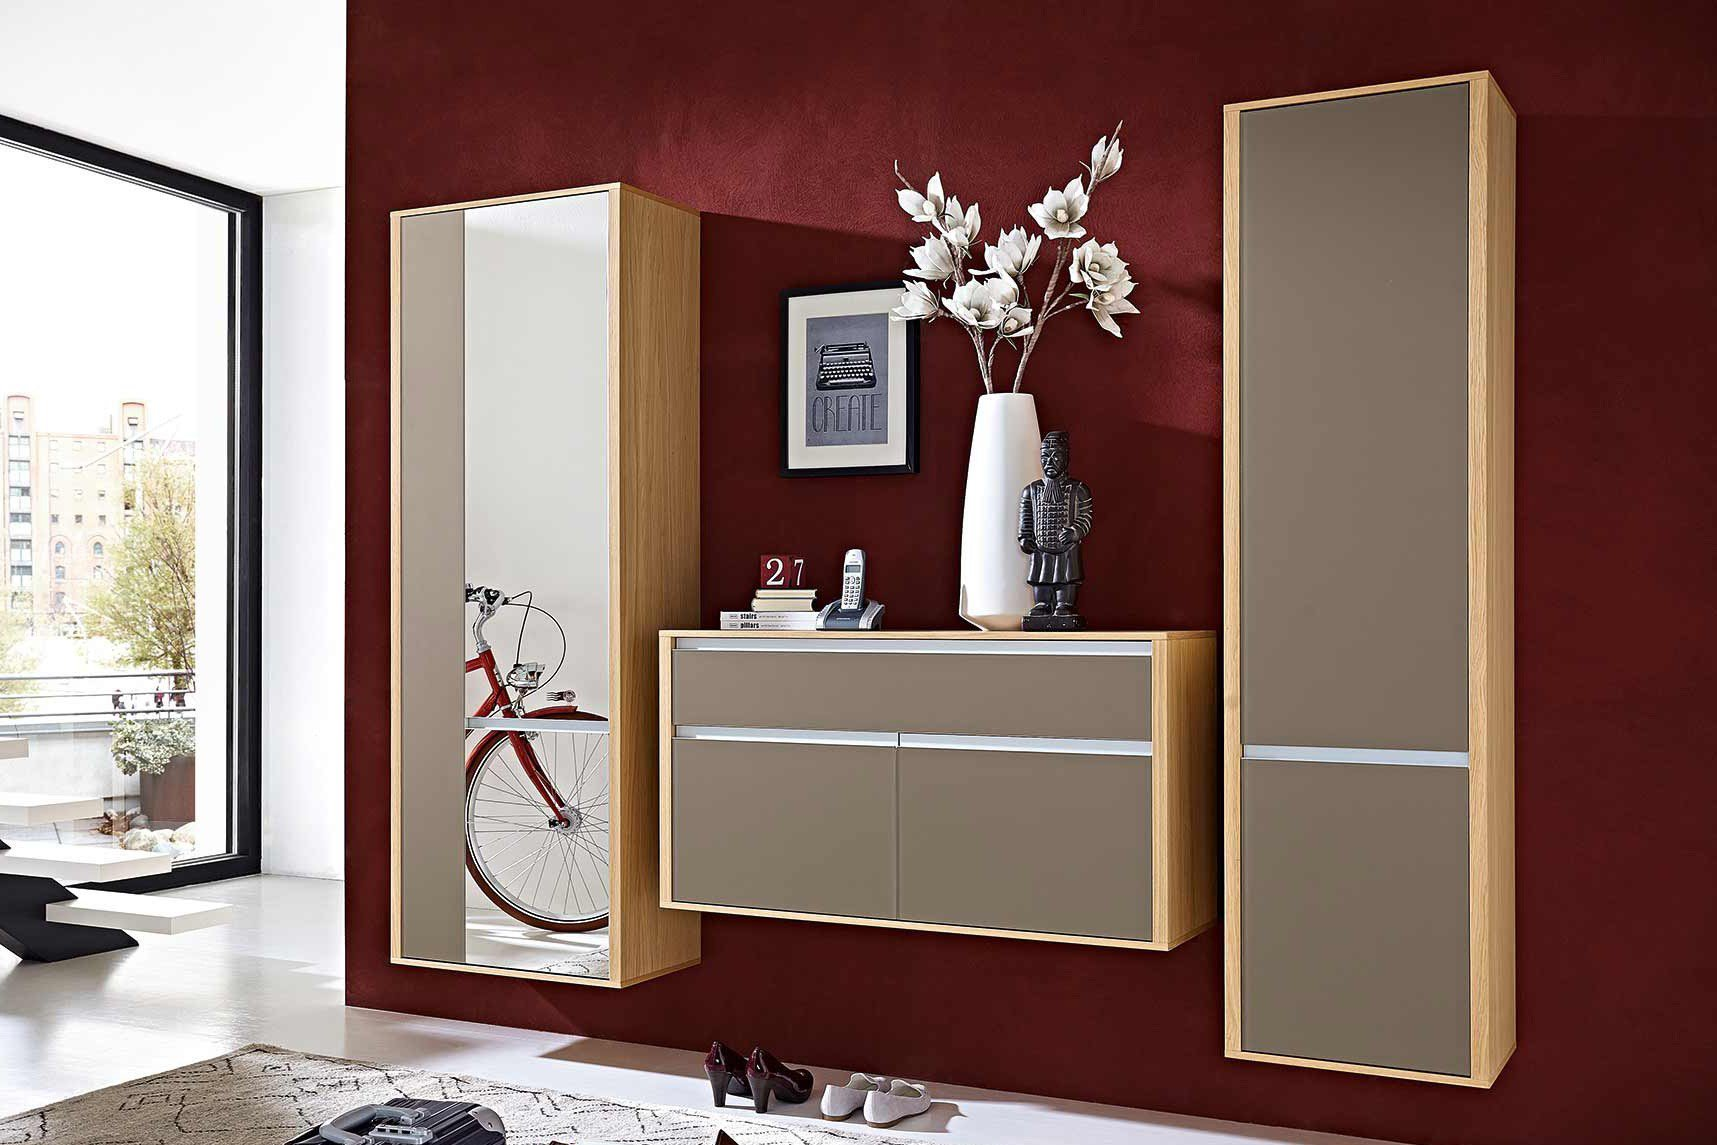 garderobe bari in eiche cappuccino von leinkenjost m bel letz ihr online shop. Black Bedroom Furniture Sets. Home Design Ideas